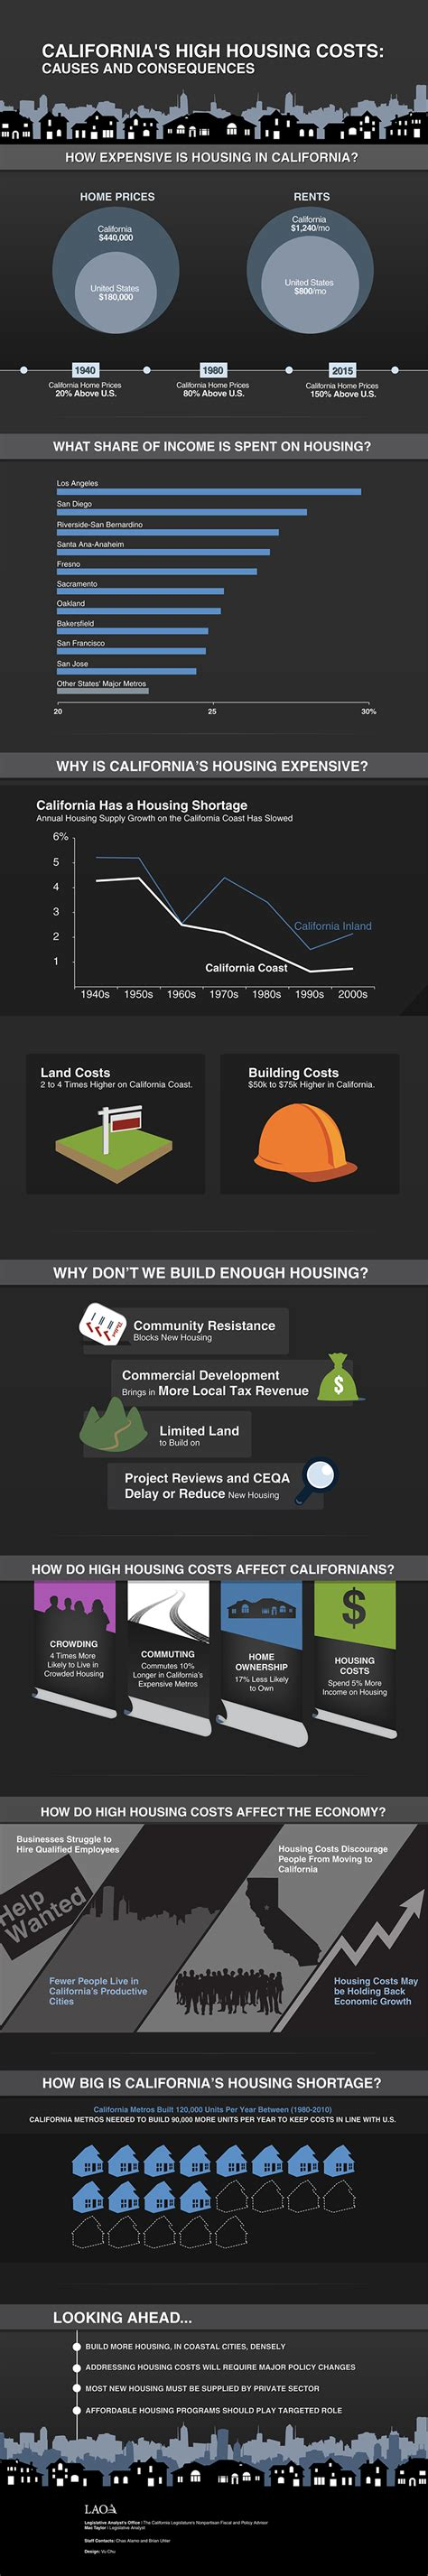 sac state housing cost lao infographic